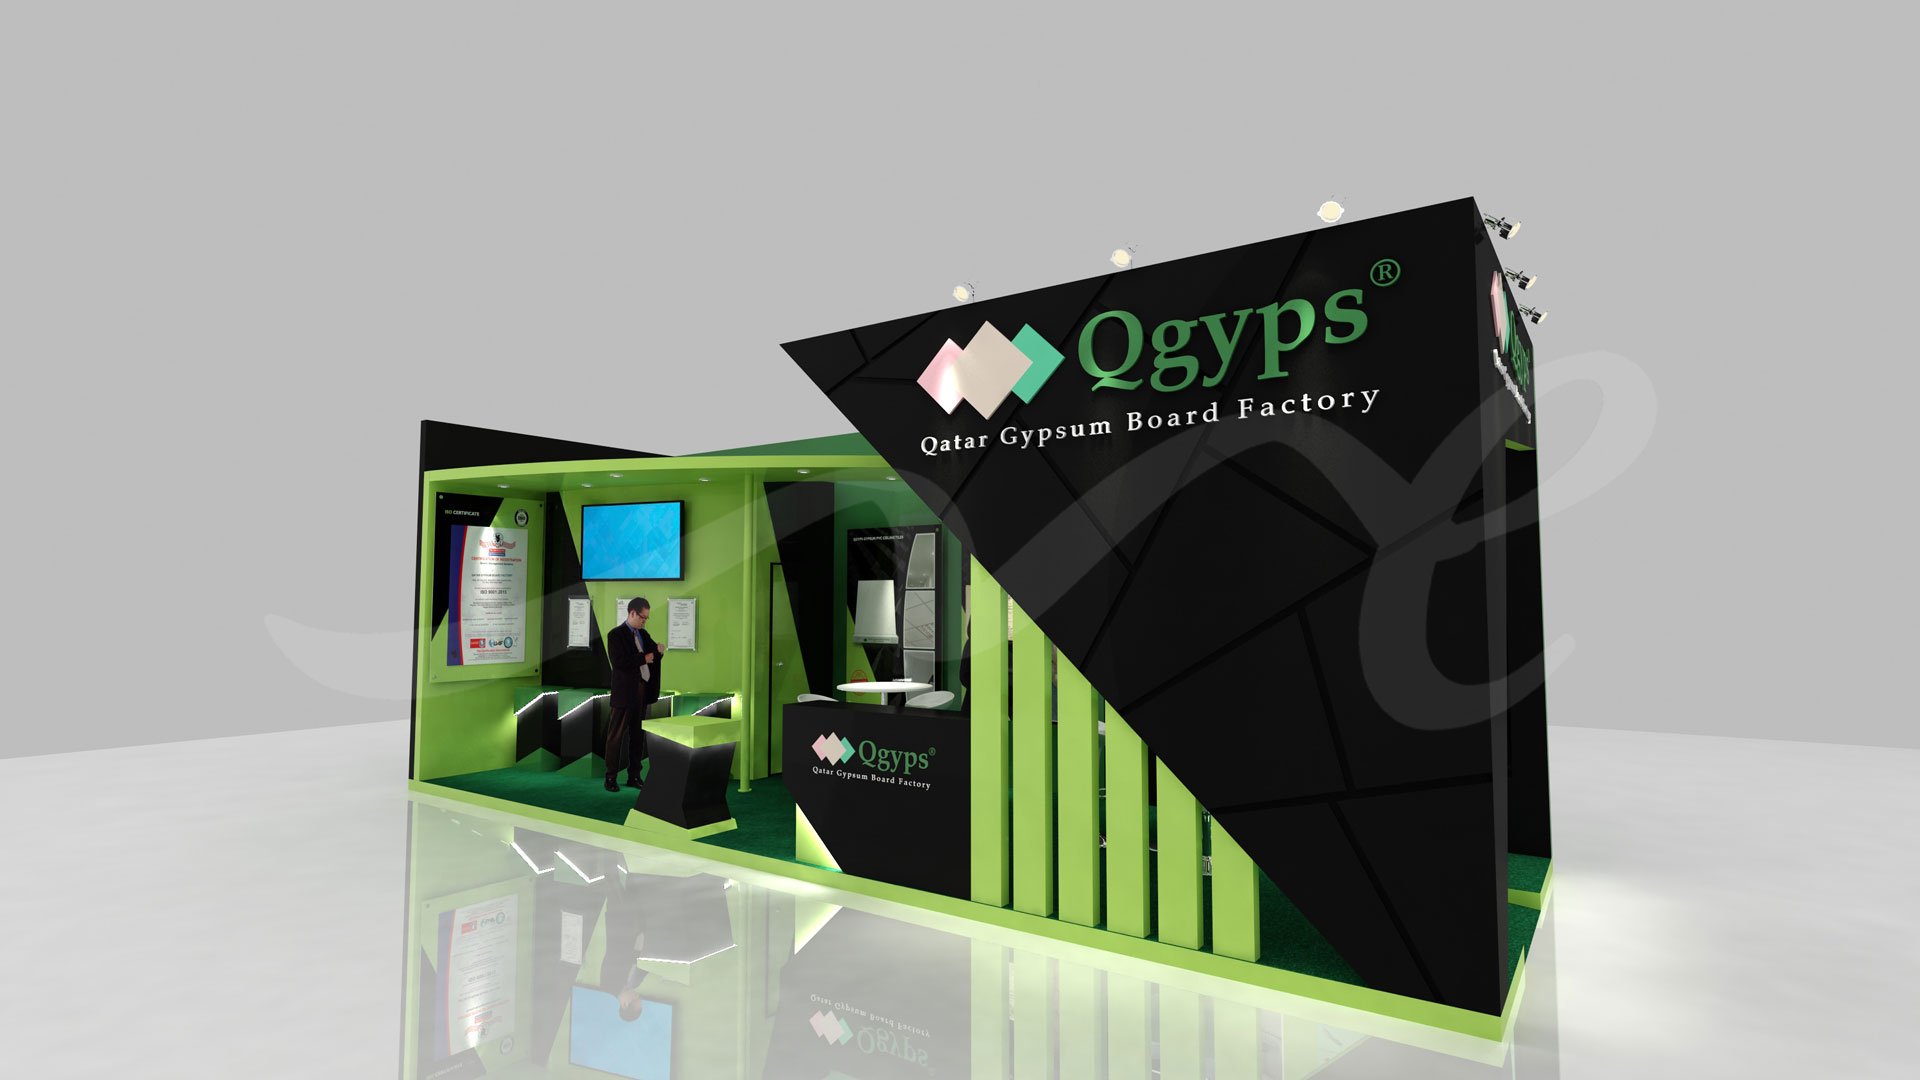 3D Design for Qatar Gypsum Board Factory stand by ME Visual